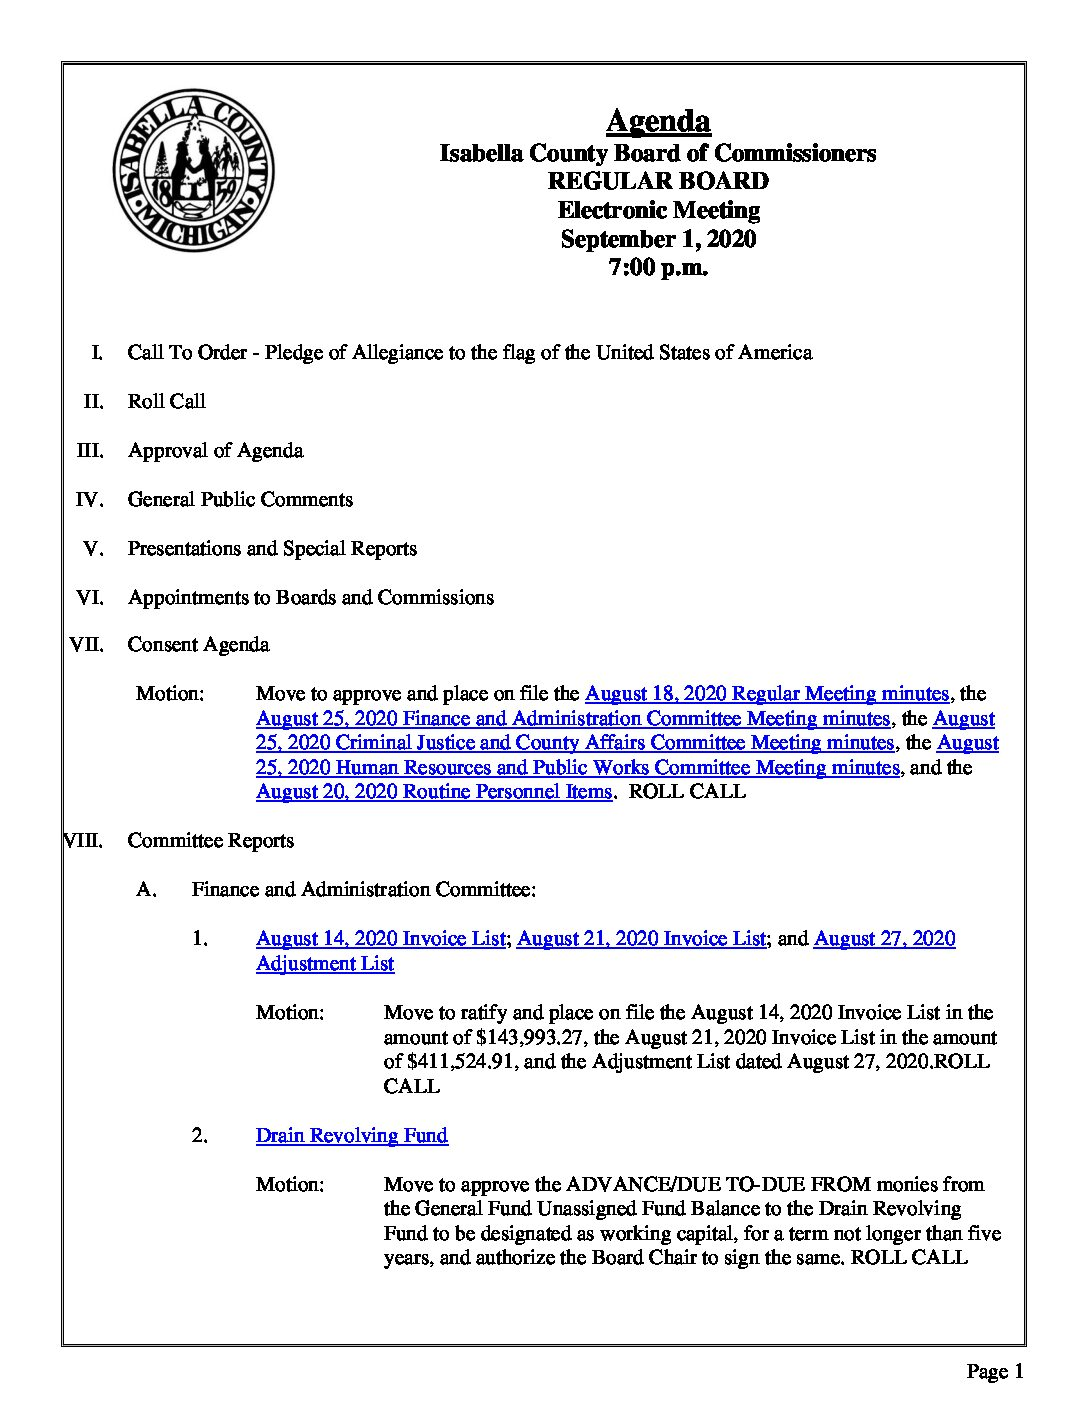 preview image of first page September 1, 2020 Agenda